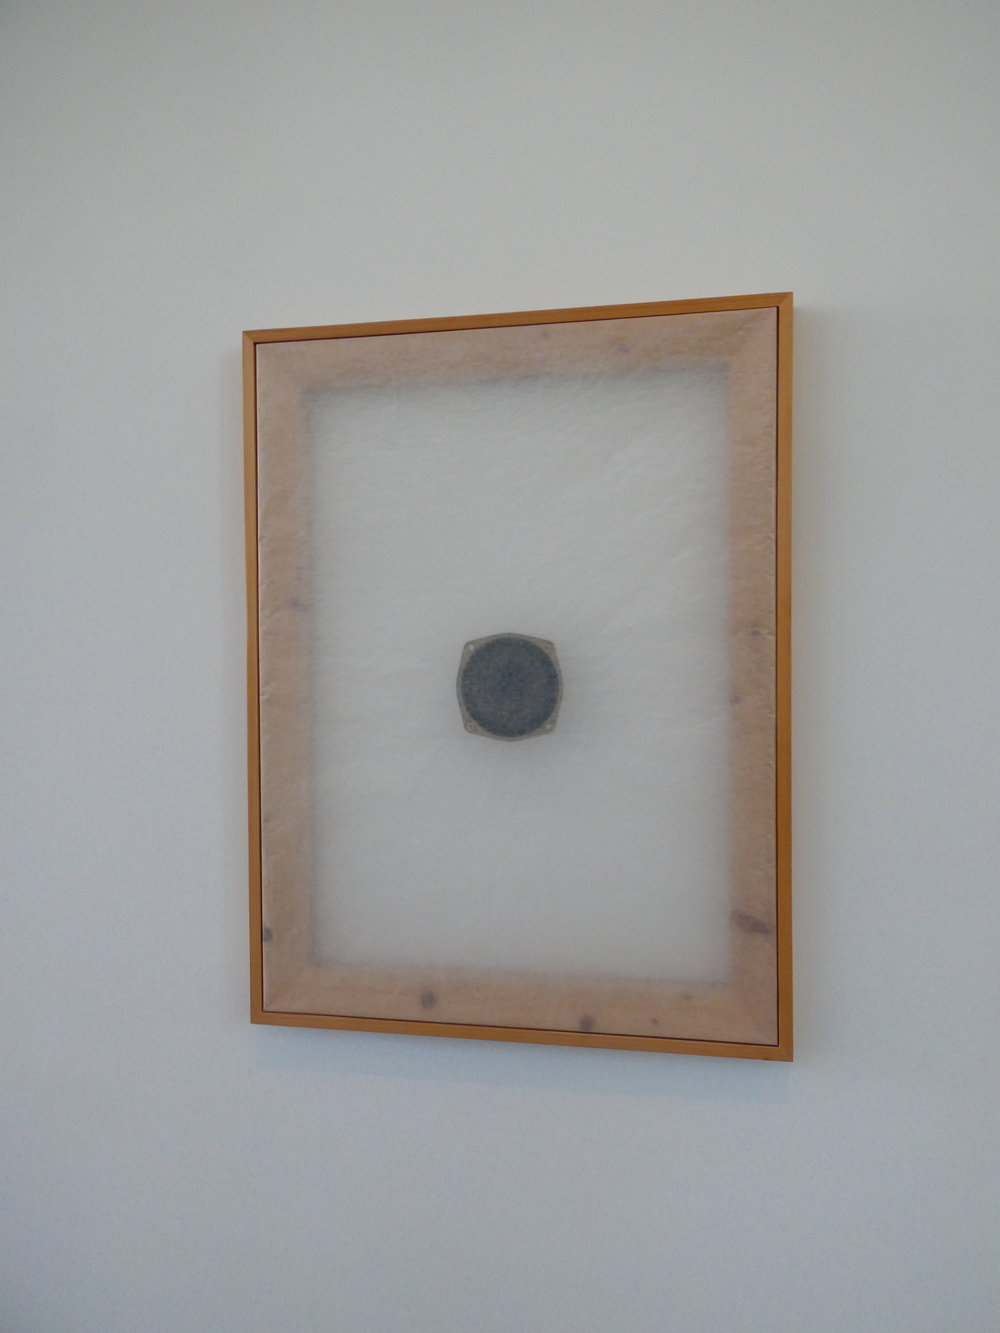 Alvin Lucier (1985): Sound on Paper. A loudspeaker animating paper in a frame.